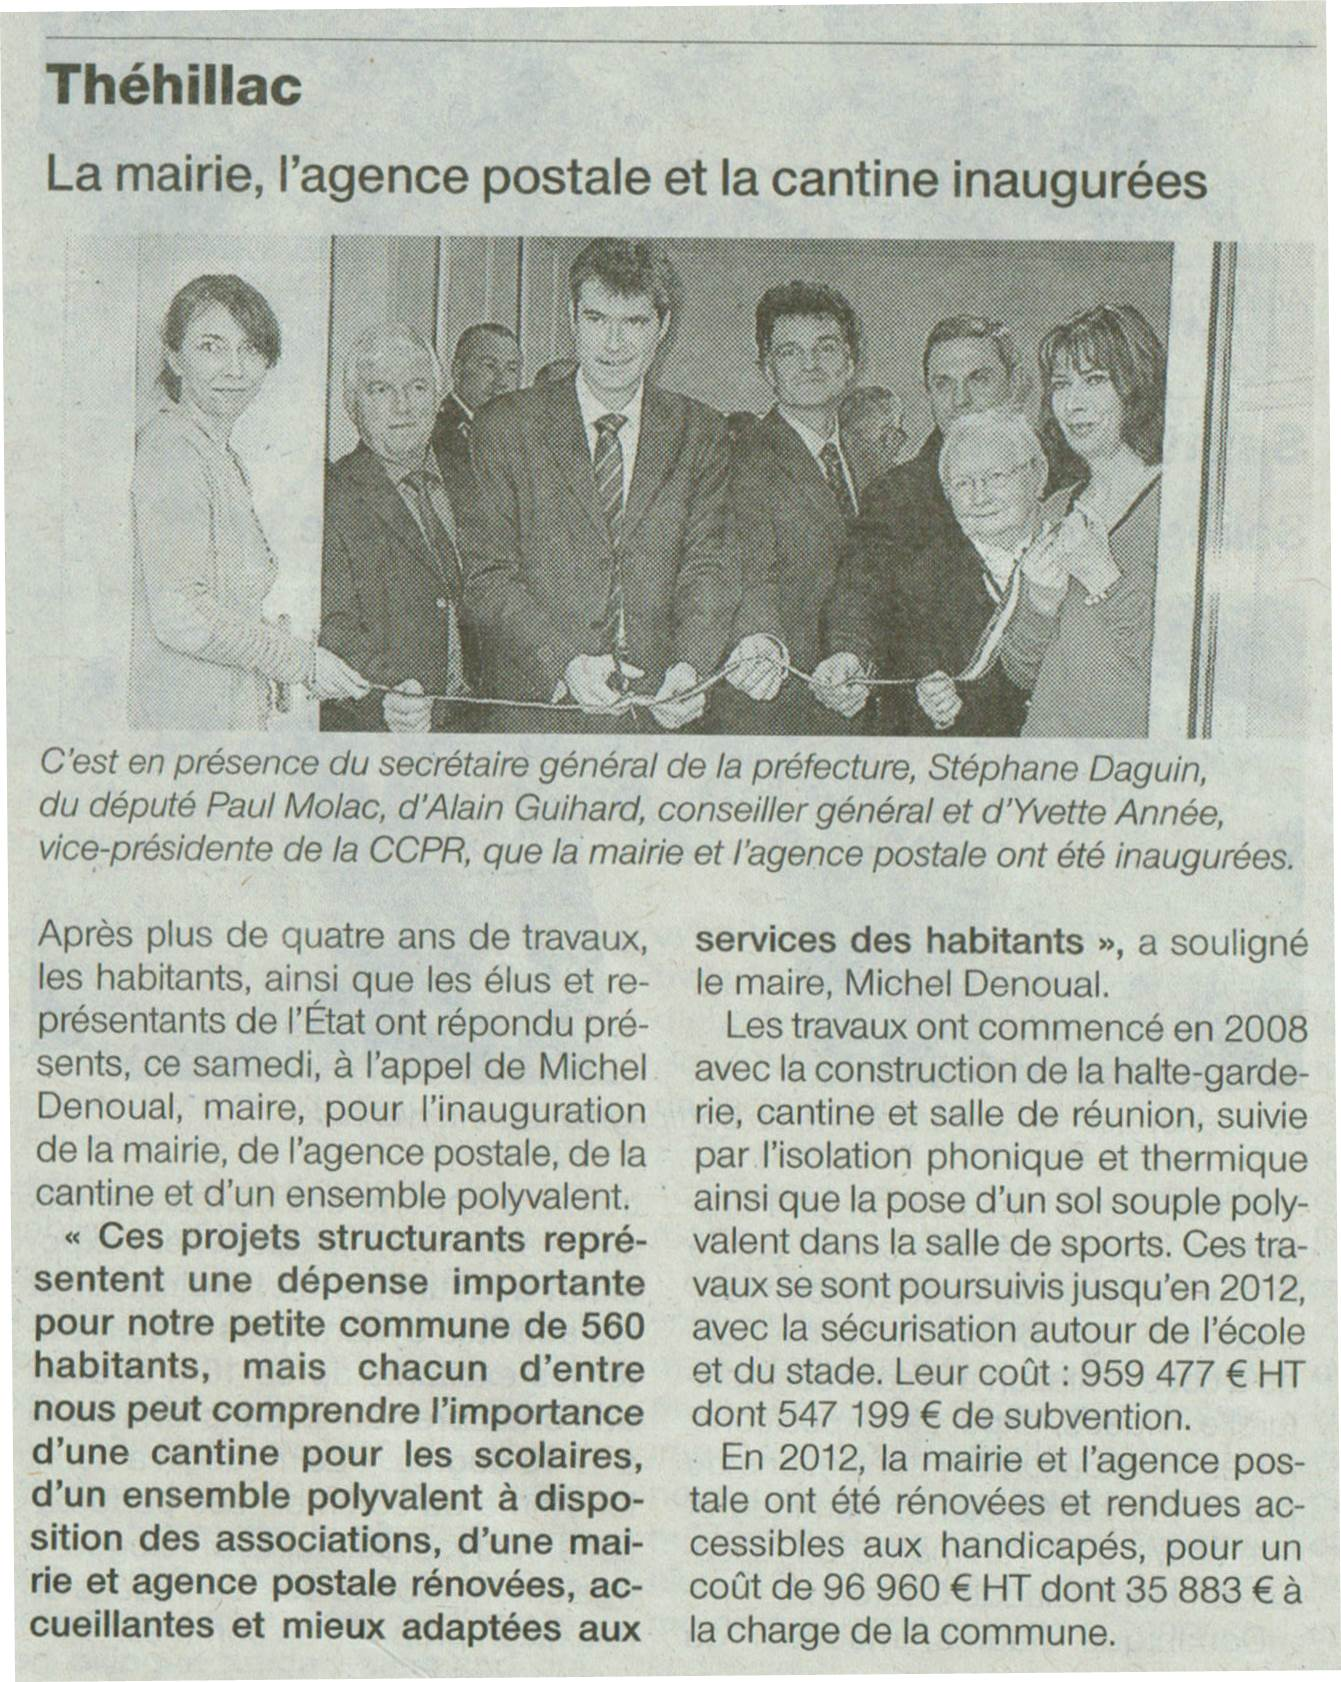 ouest_france_18-03-2013_theillac